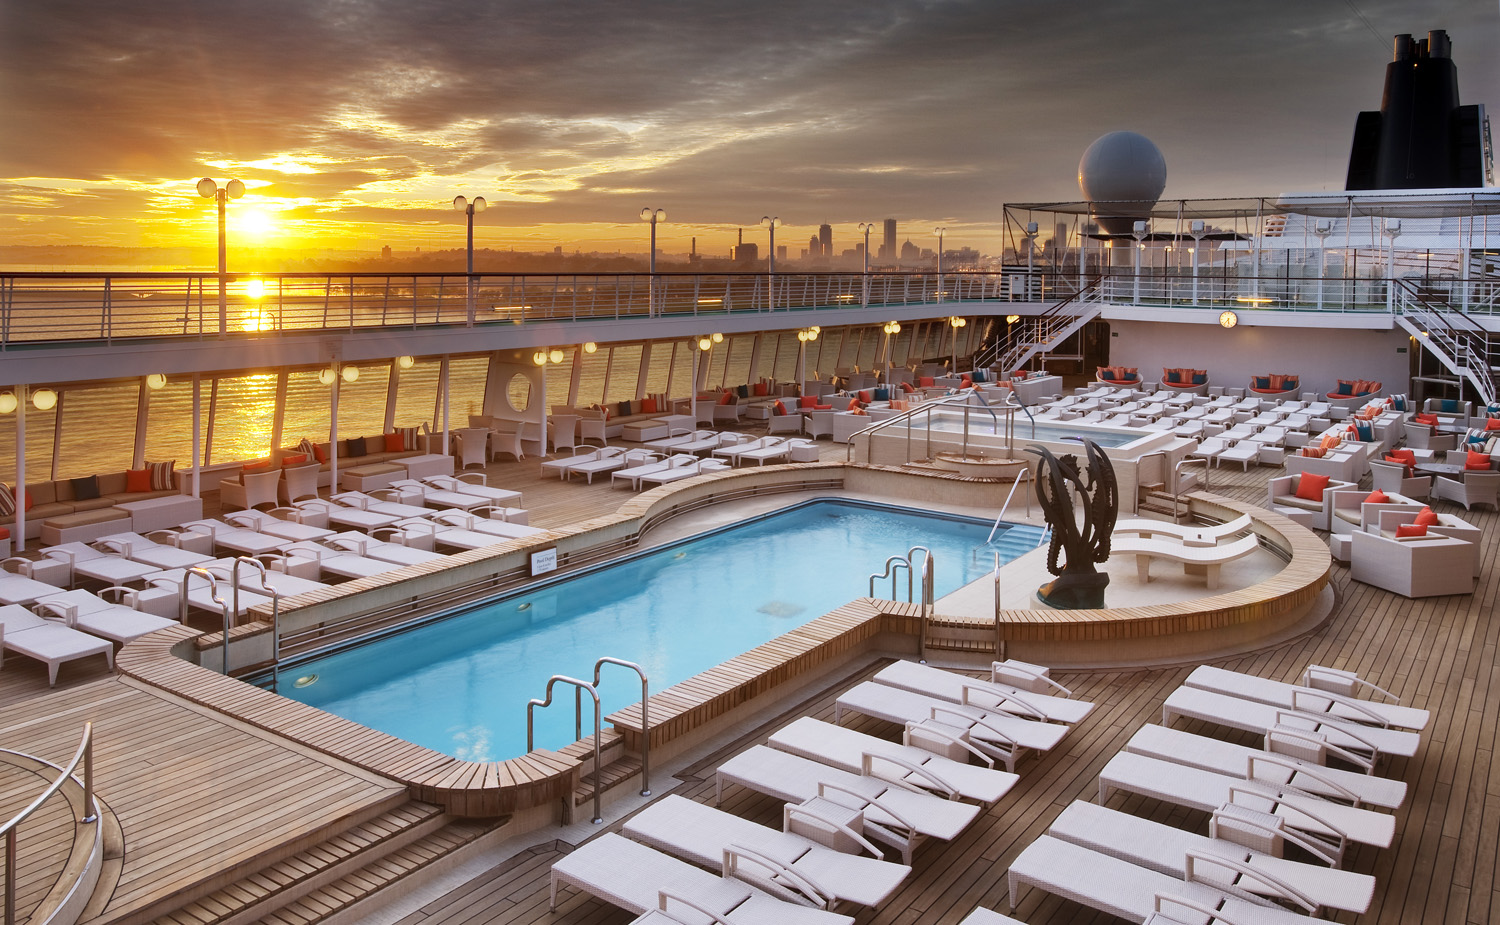 CS_Refurb_PoolDeck_Sunset.jpg